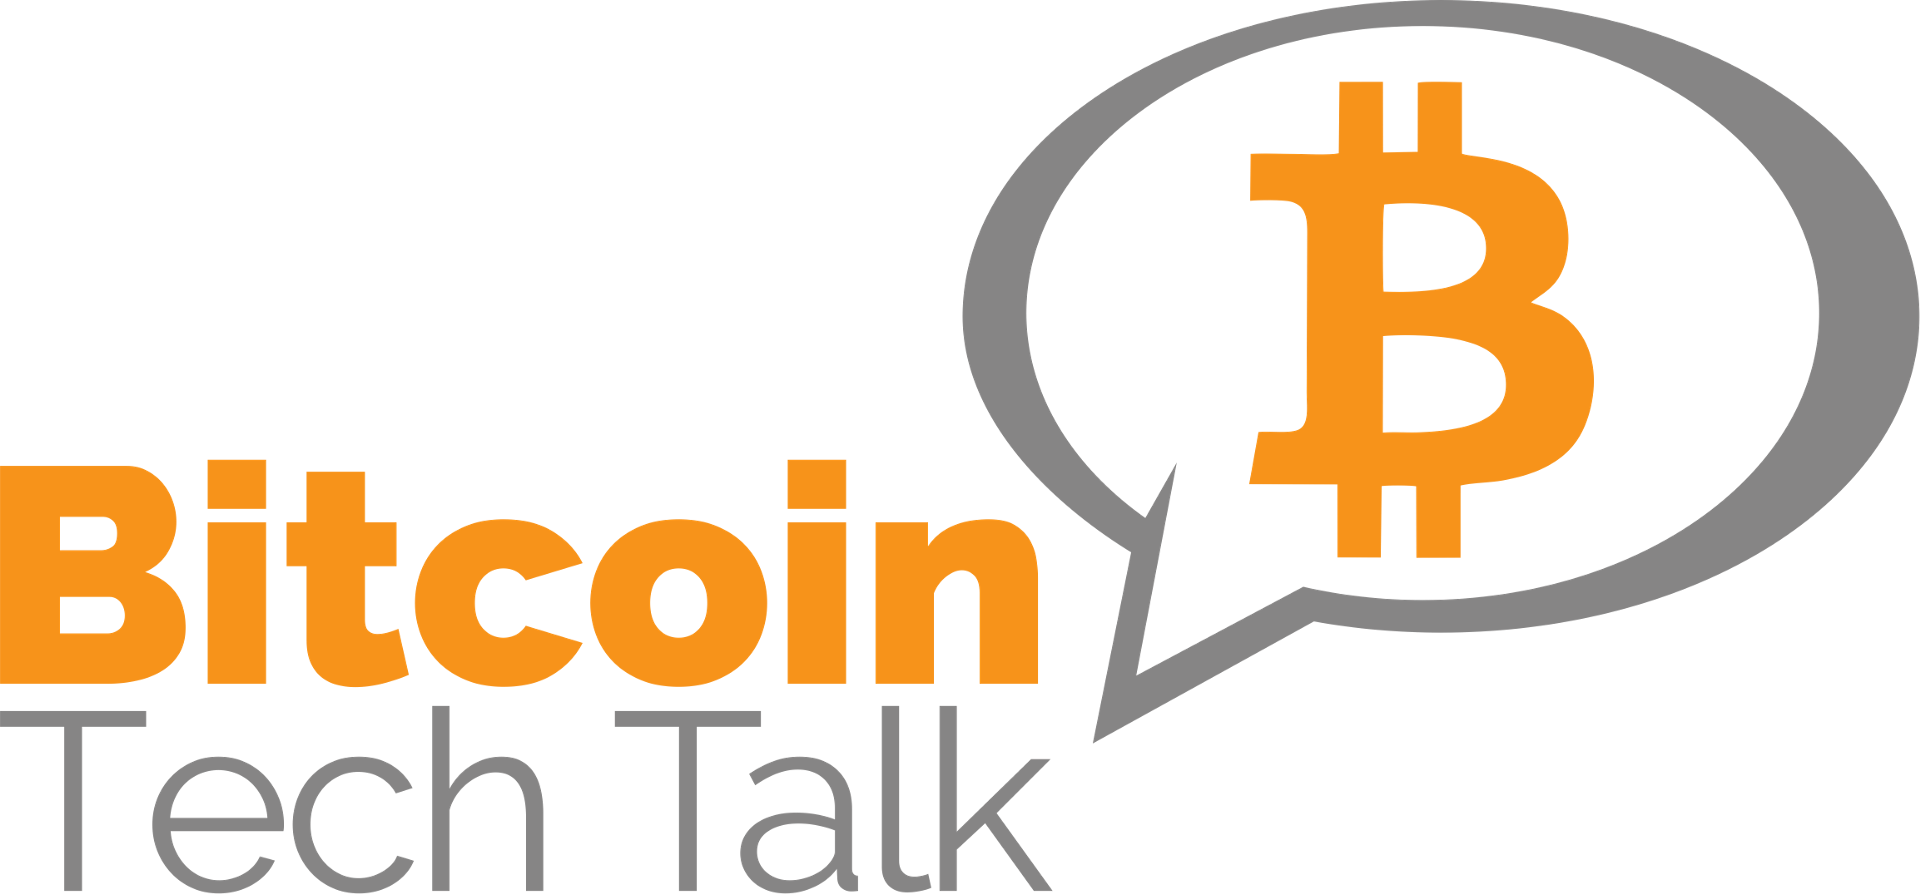 Bitcoin Gold What You Need To Know Tech Talk